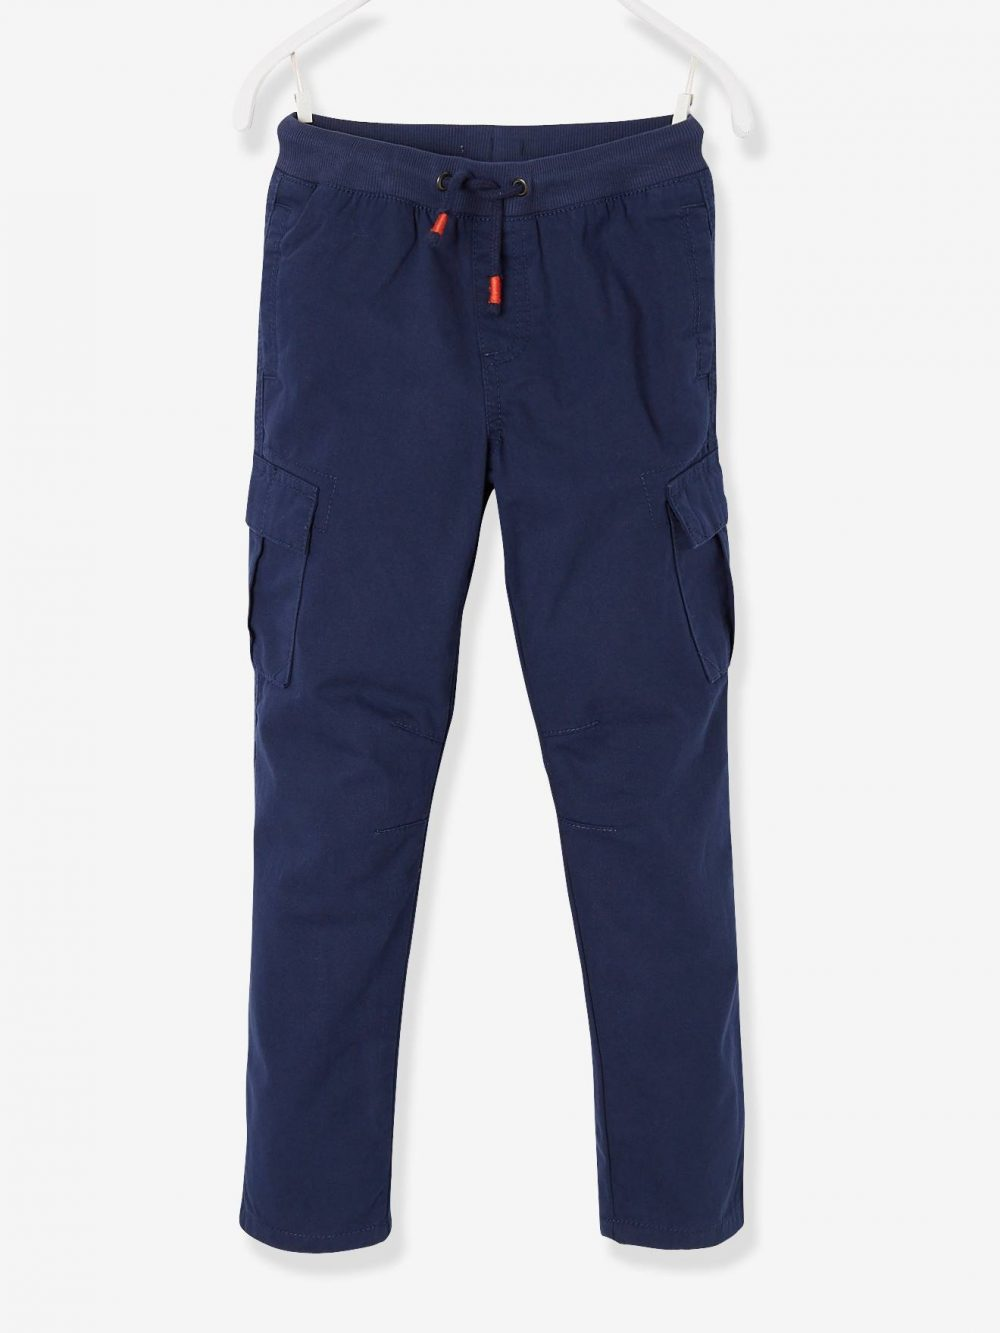 Cargo-Style Trousers, Lined, for Boys blue dark solid